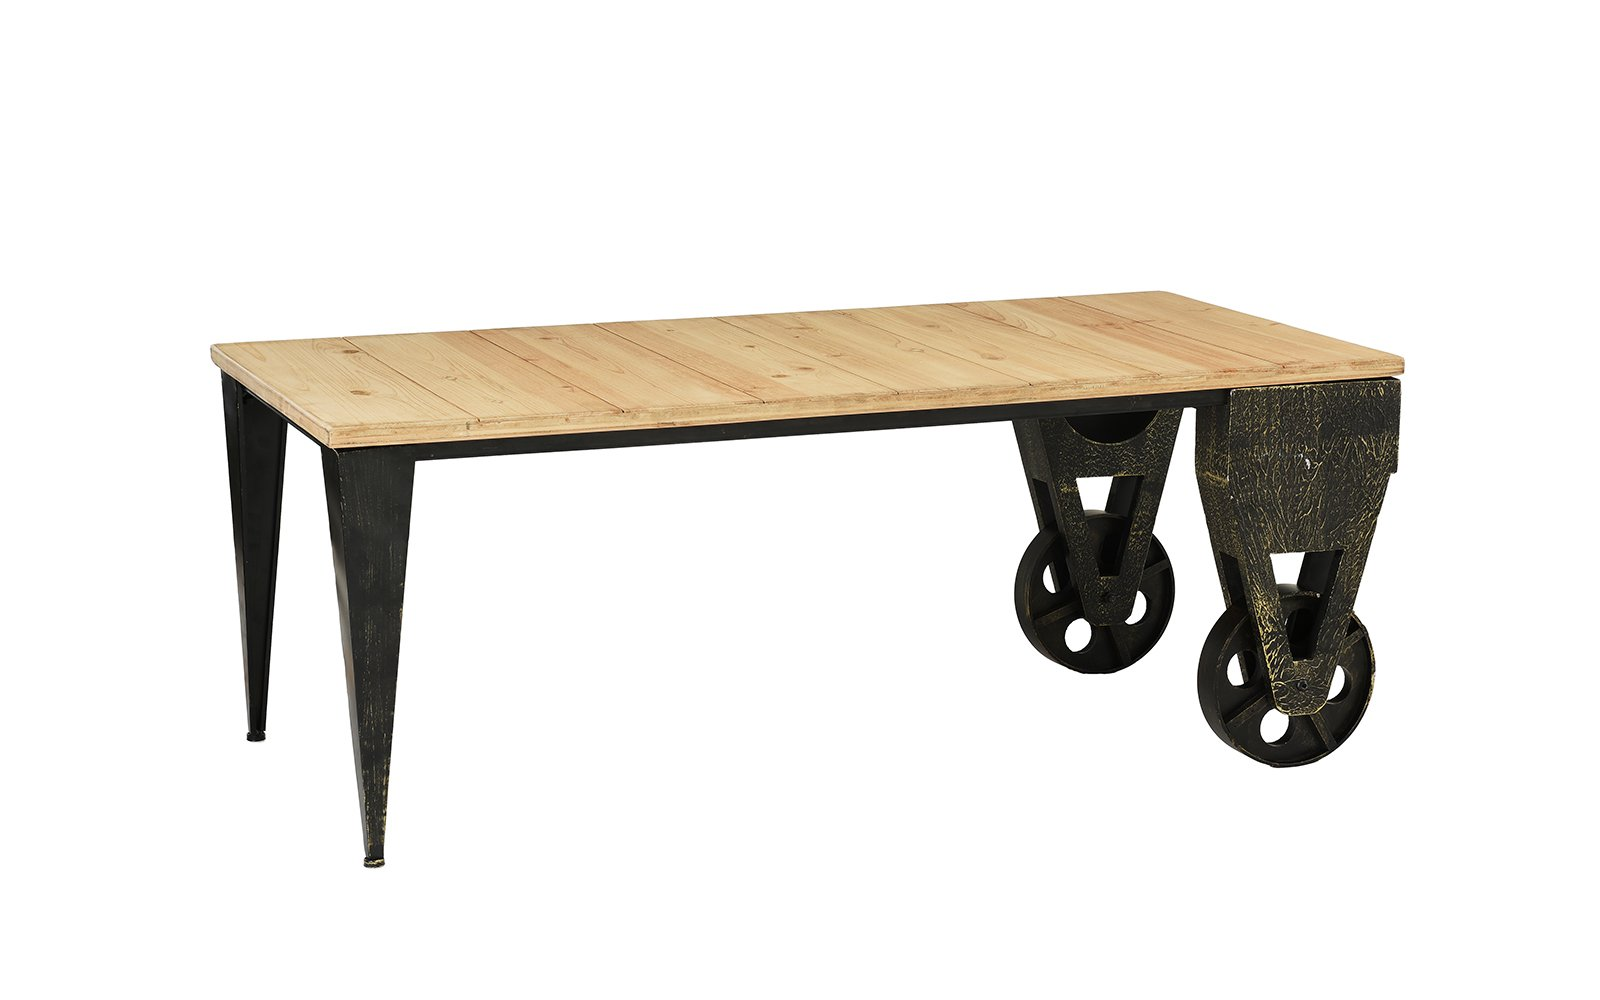 anders metal and natural wooden plank accent coffee table wood deep seated sofa custom hybrid unusual ideas pottery barn kids big lots dresser rattan drinks west elm white console